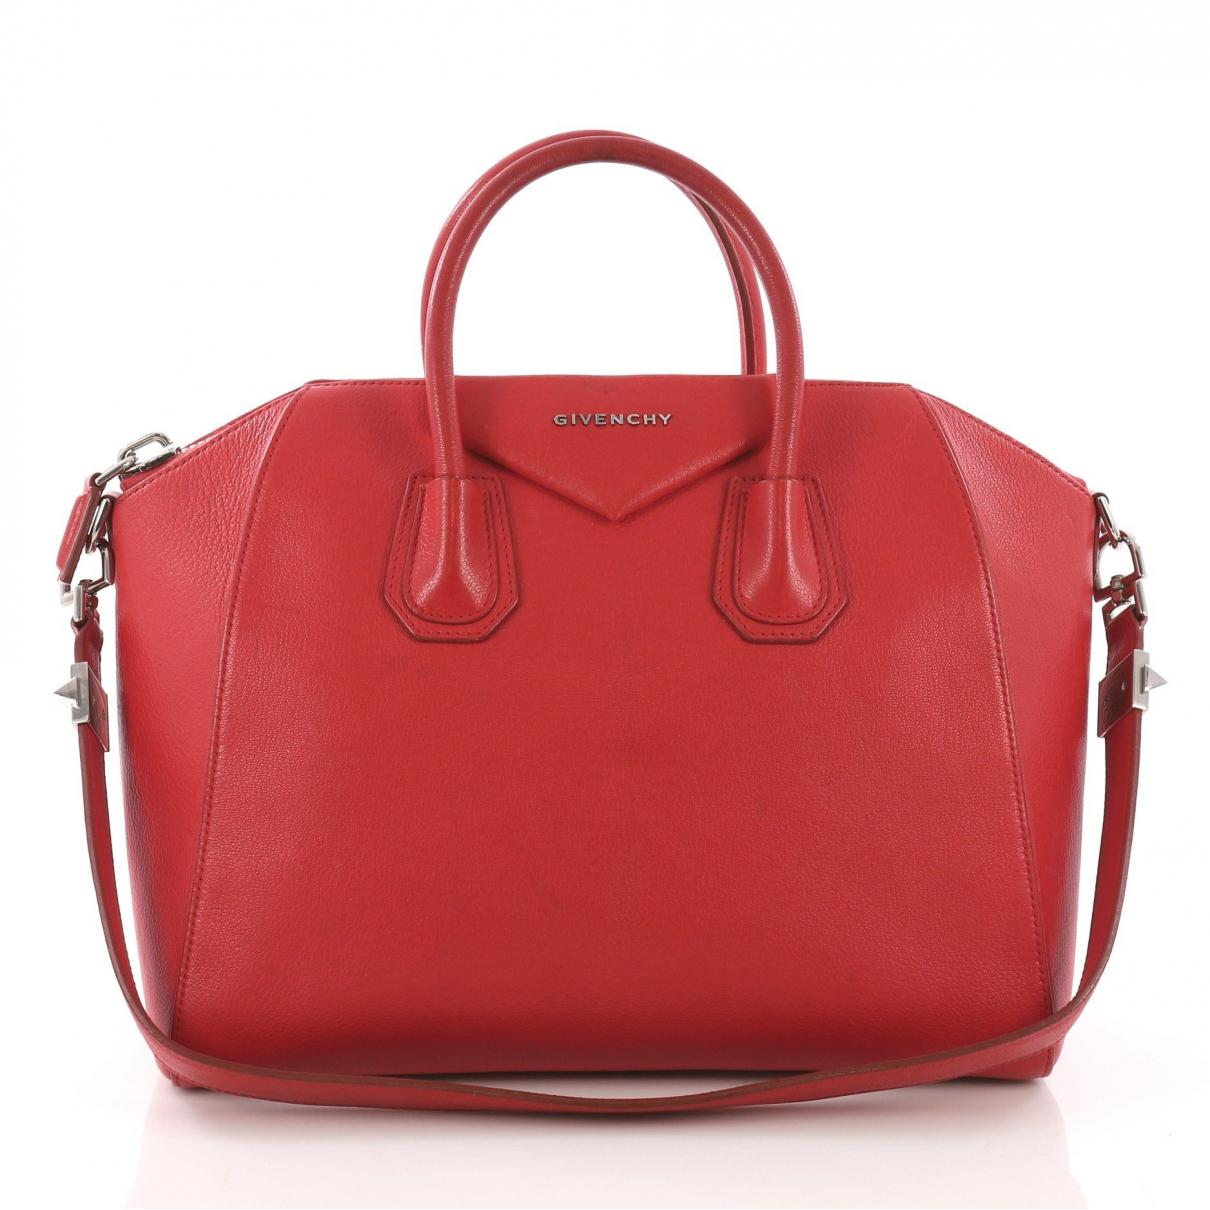 3312731df6 Givenchy - Pre-owned Antigona Red Leather Handbags - Lyst. View fullscreen